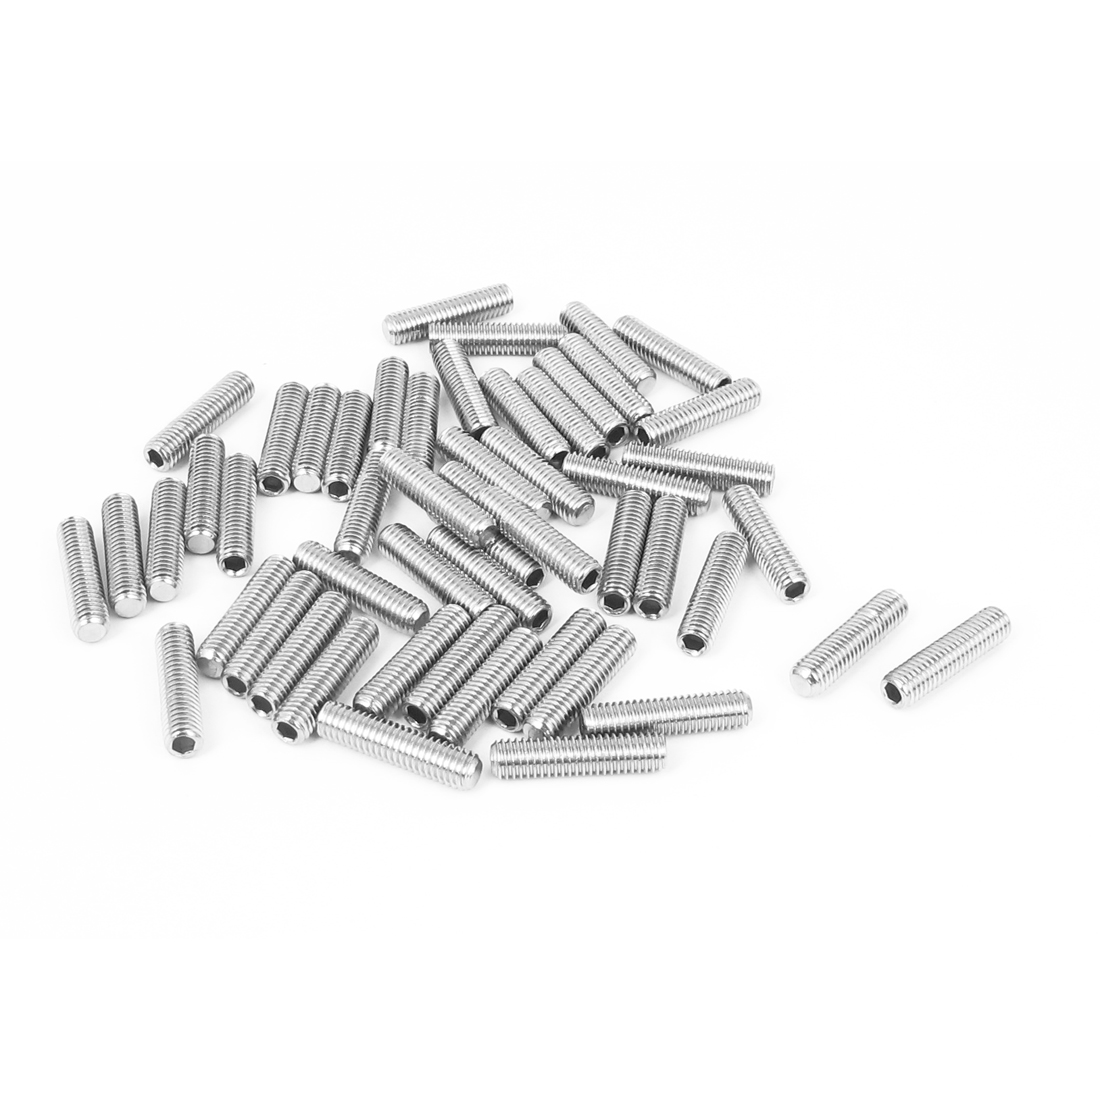 M5x20mm Stainless Steel Hex Socket Set Cap Point Grub Screws Silver Tone 50pcs